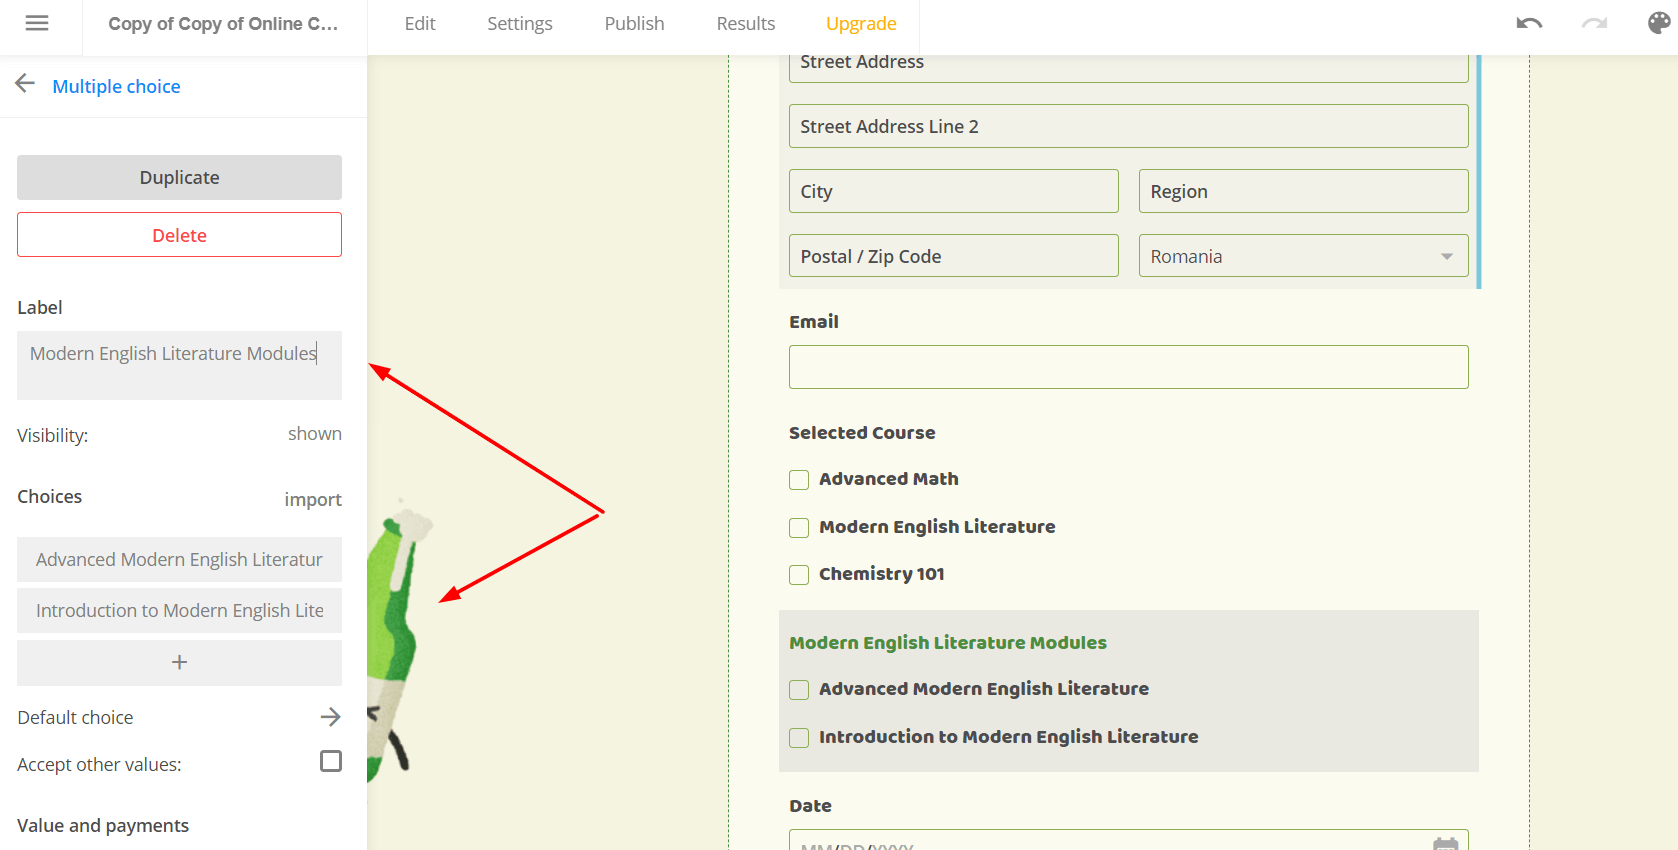 booking system with multiple choice options